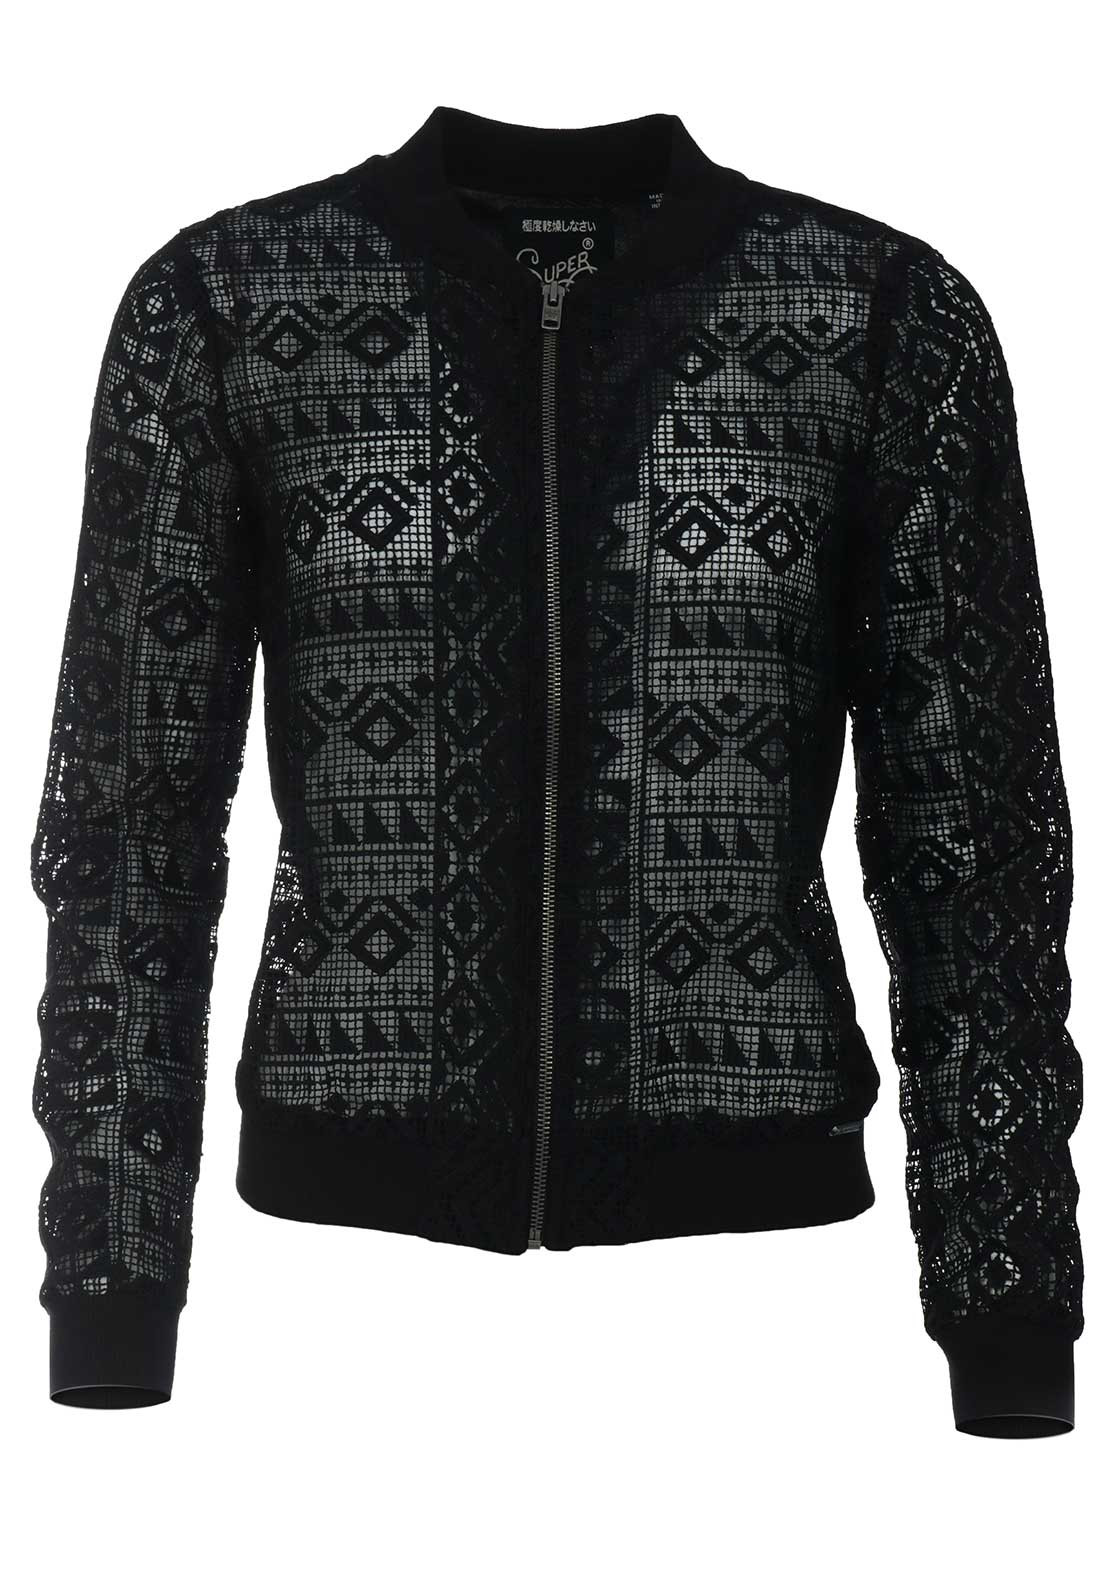 ffd06d8619951 Superdry Womens Geo Embroidered Bomber Jacket